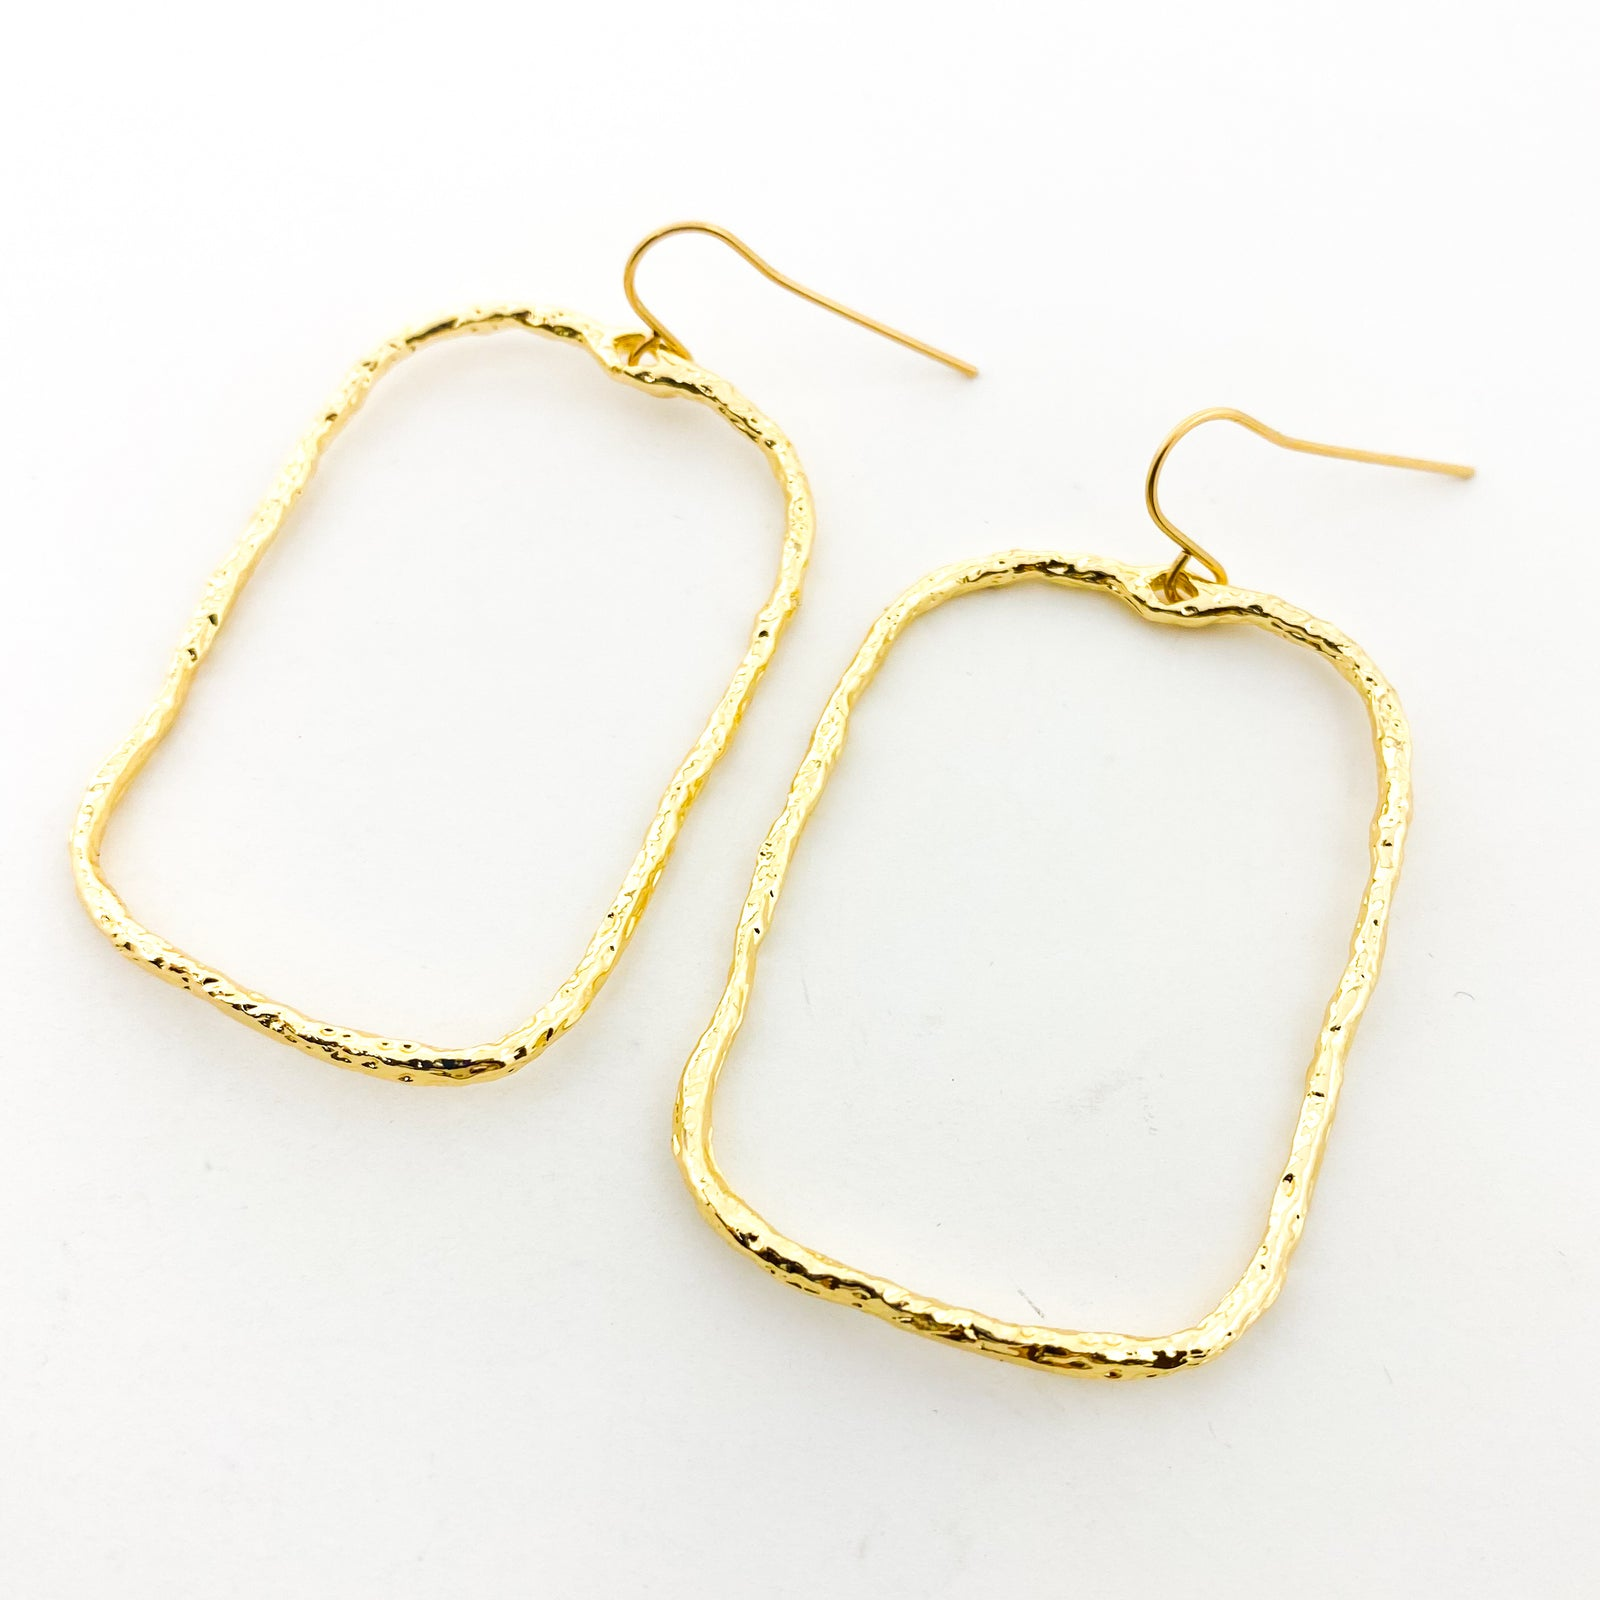 TWISTED HAMMERED WIDE RECTANGLE EARRINGS | 14K GOLD-FILLED